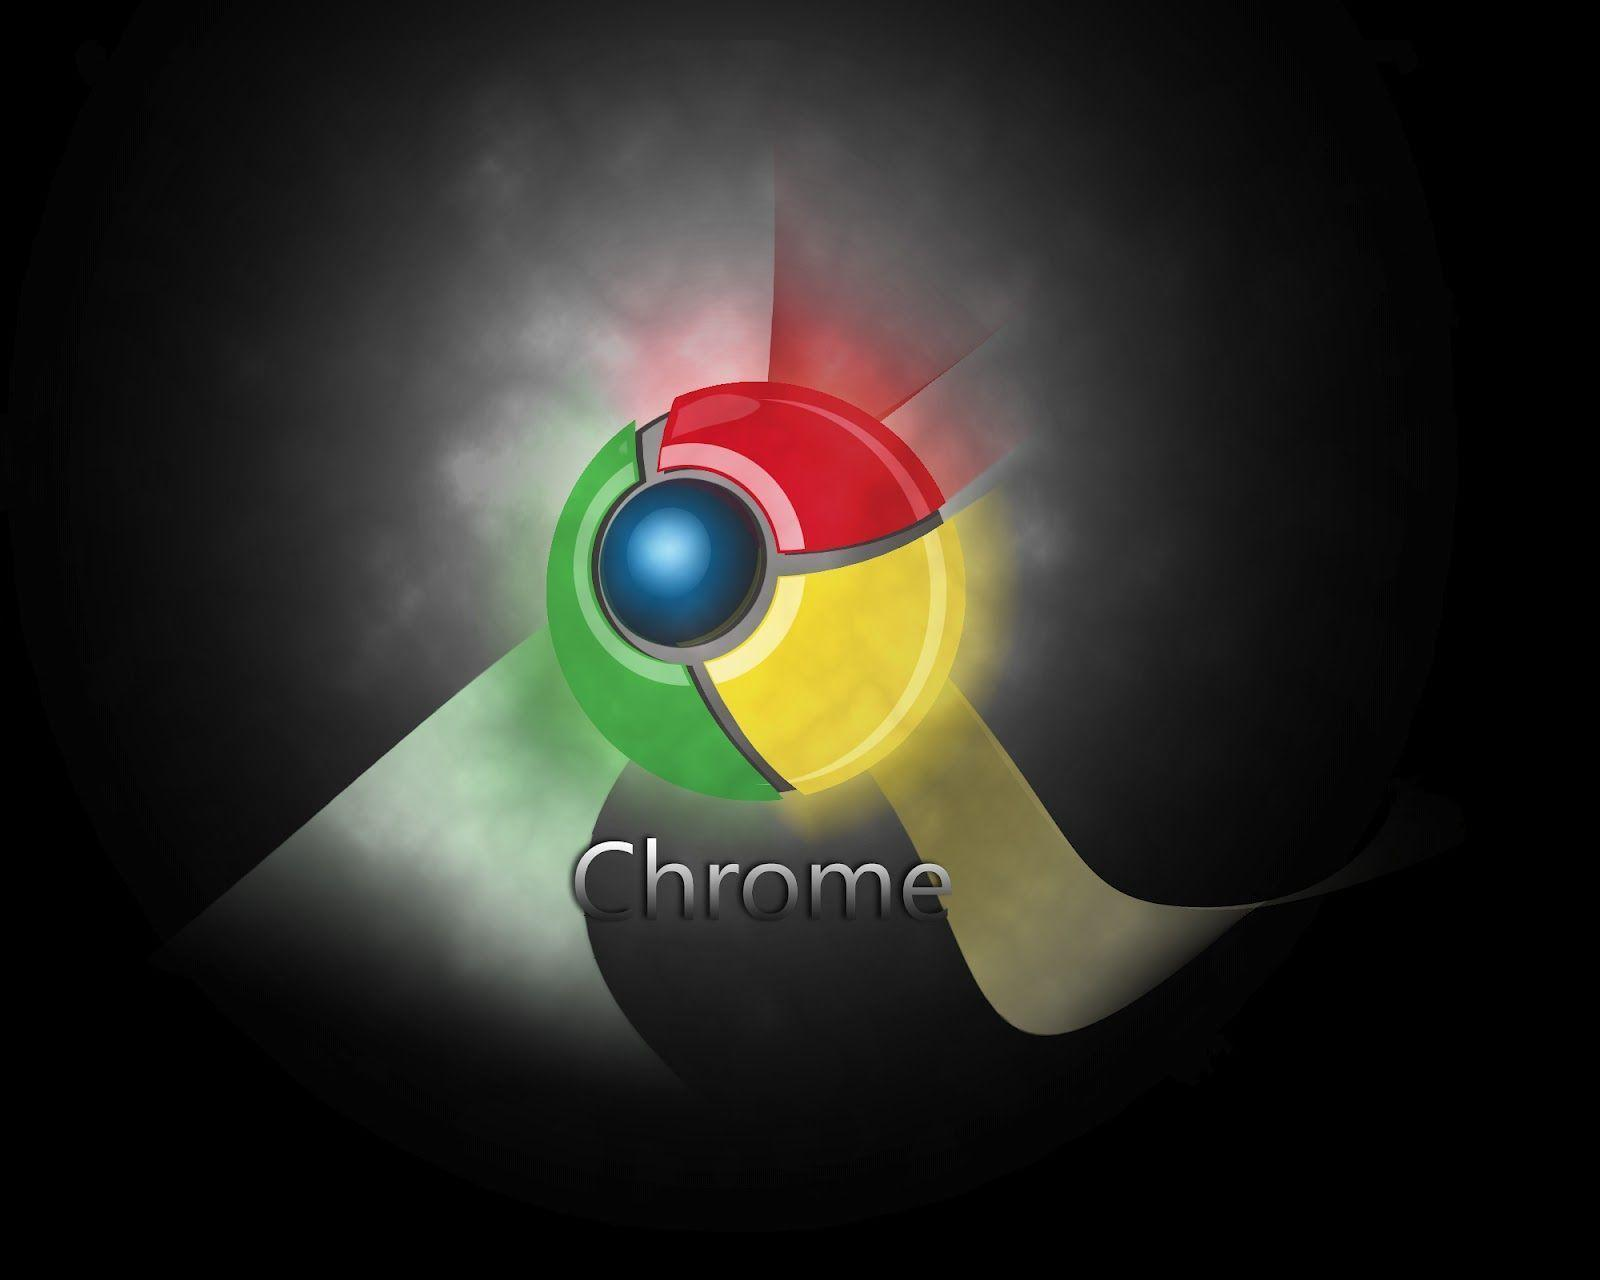 how to change google chrome background to black